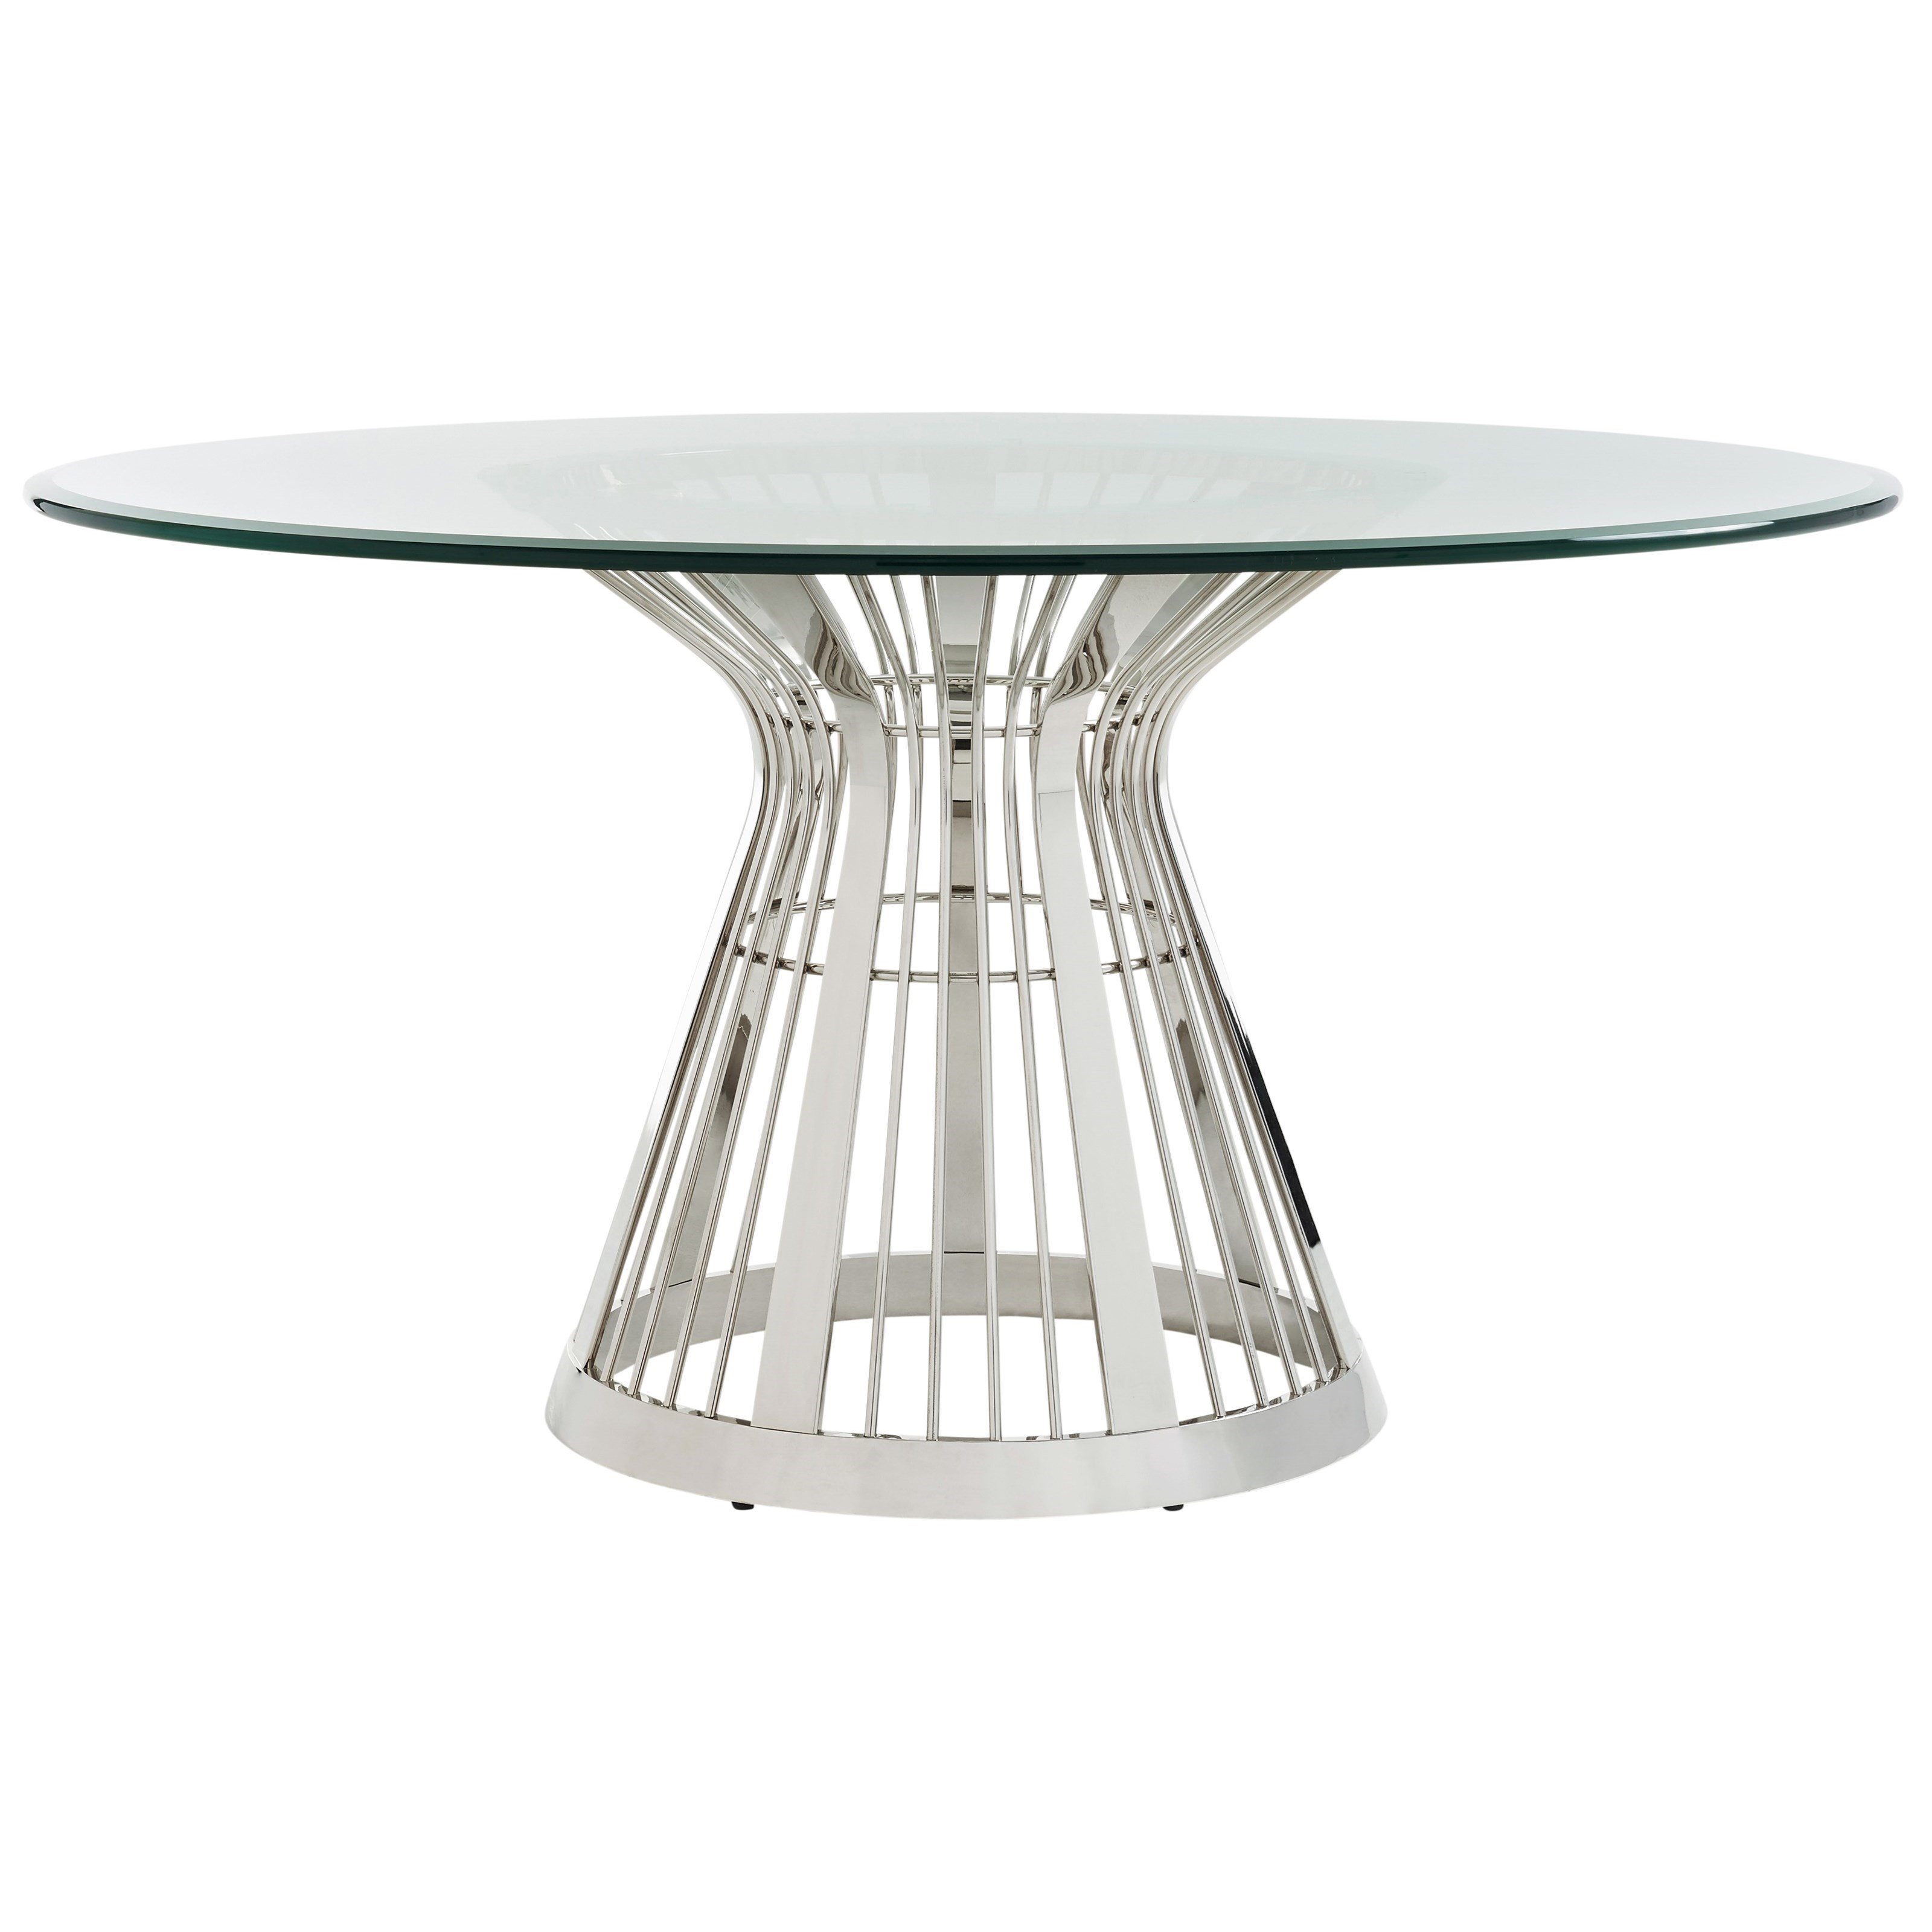 Ariana Riviera Stainless Dining Table Base With 60  by Lexington at Baer's Furniture